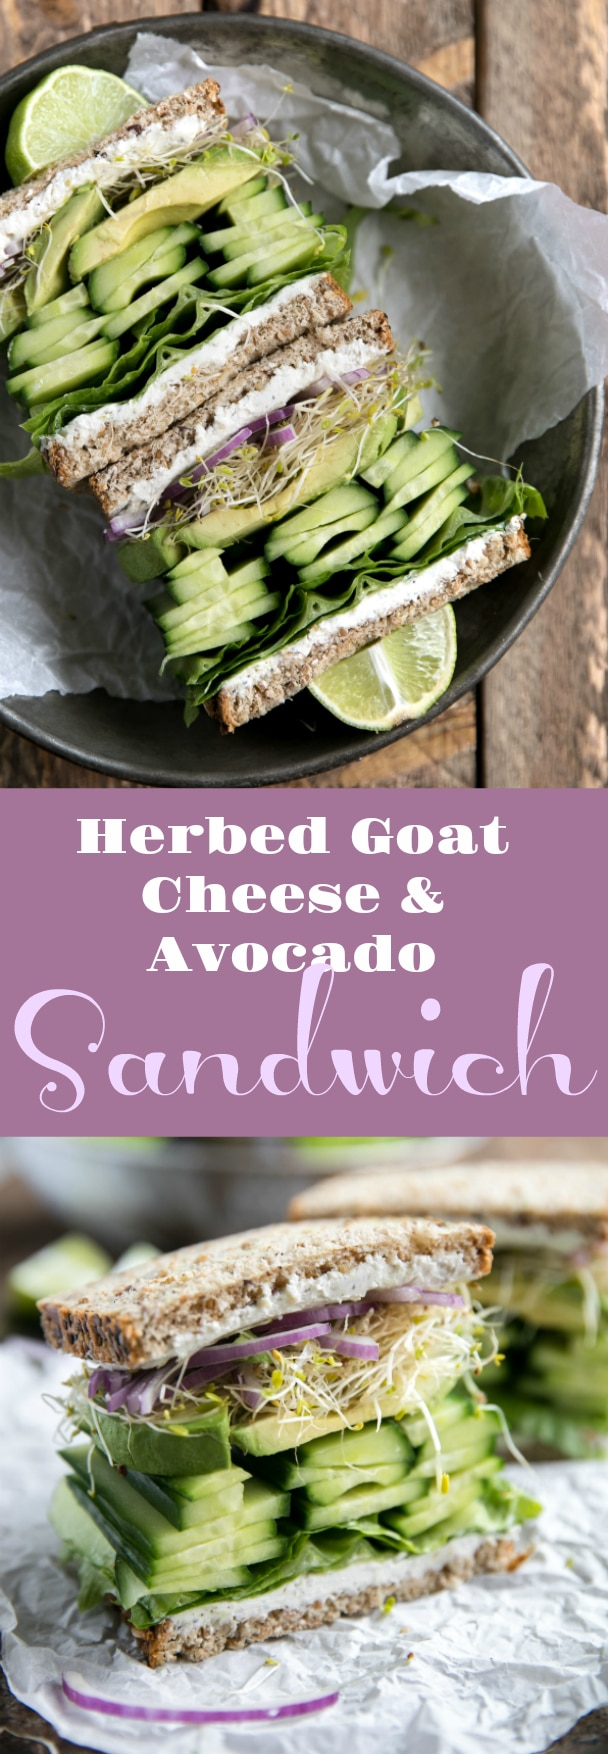 Herbed Goat Cheese and Avocado Sandwich #sandwich #vegetarian #lunch #easyrecipe #goatcheese #avocado #theforkedspoon via @theforkedspoon